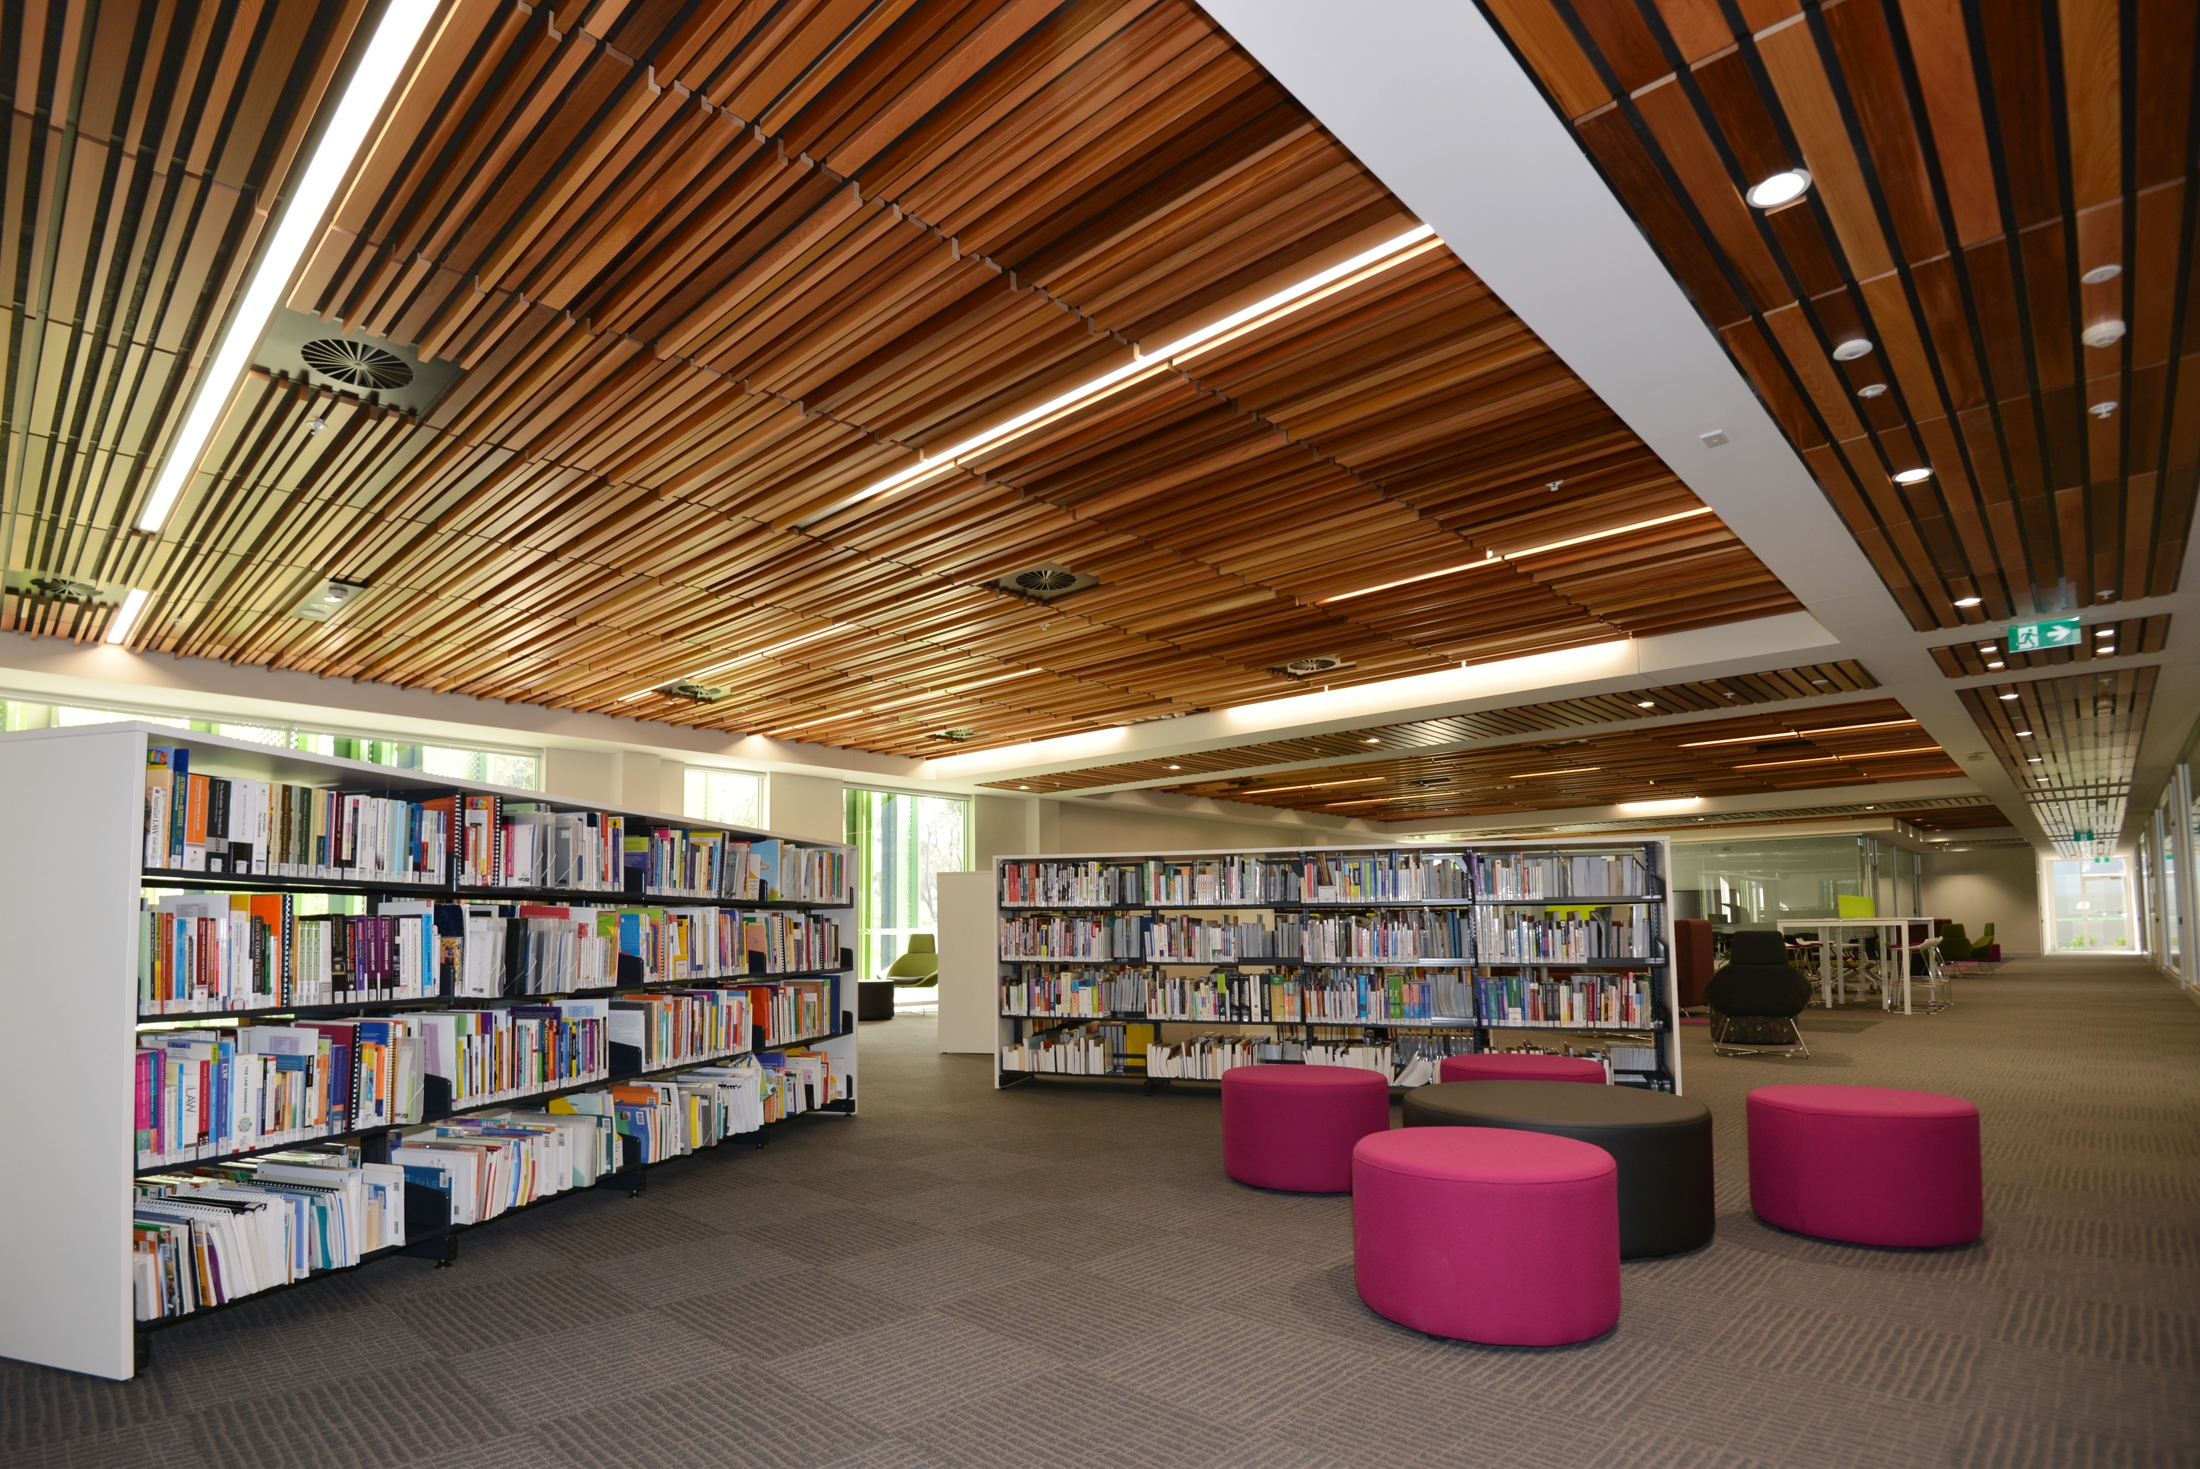 Feature Timber Ceiling Solves Acoustics Access And